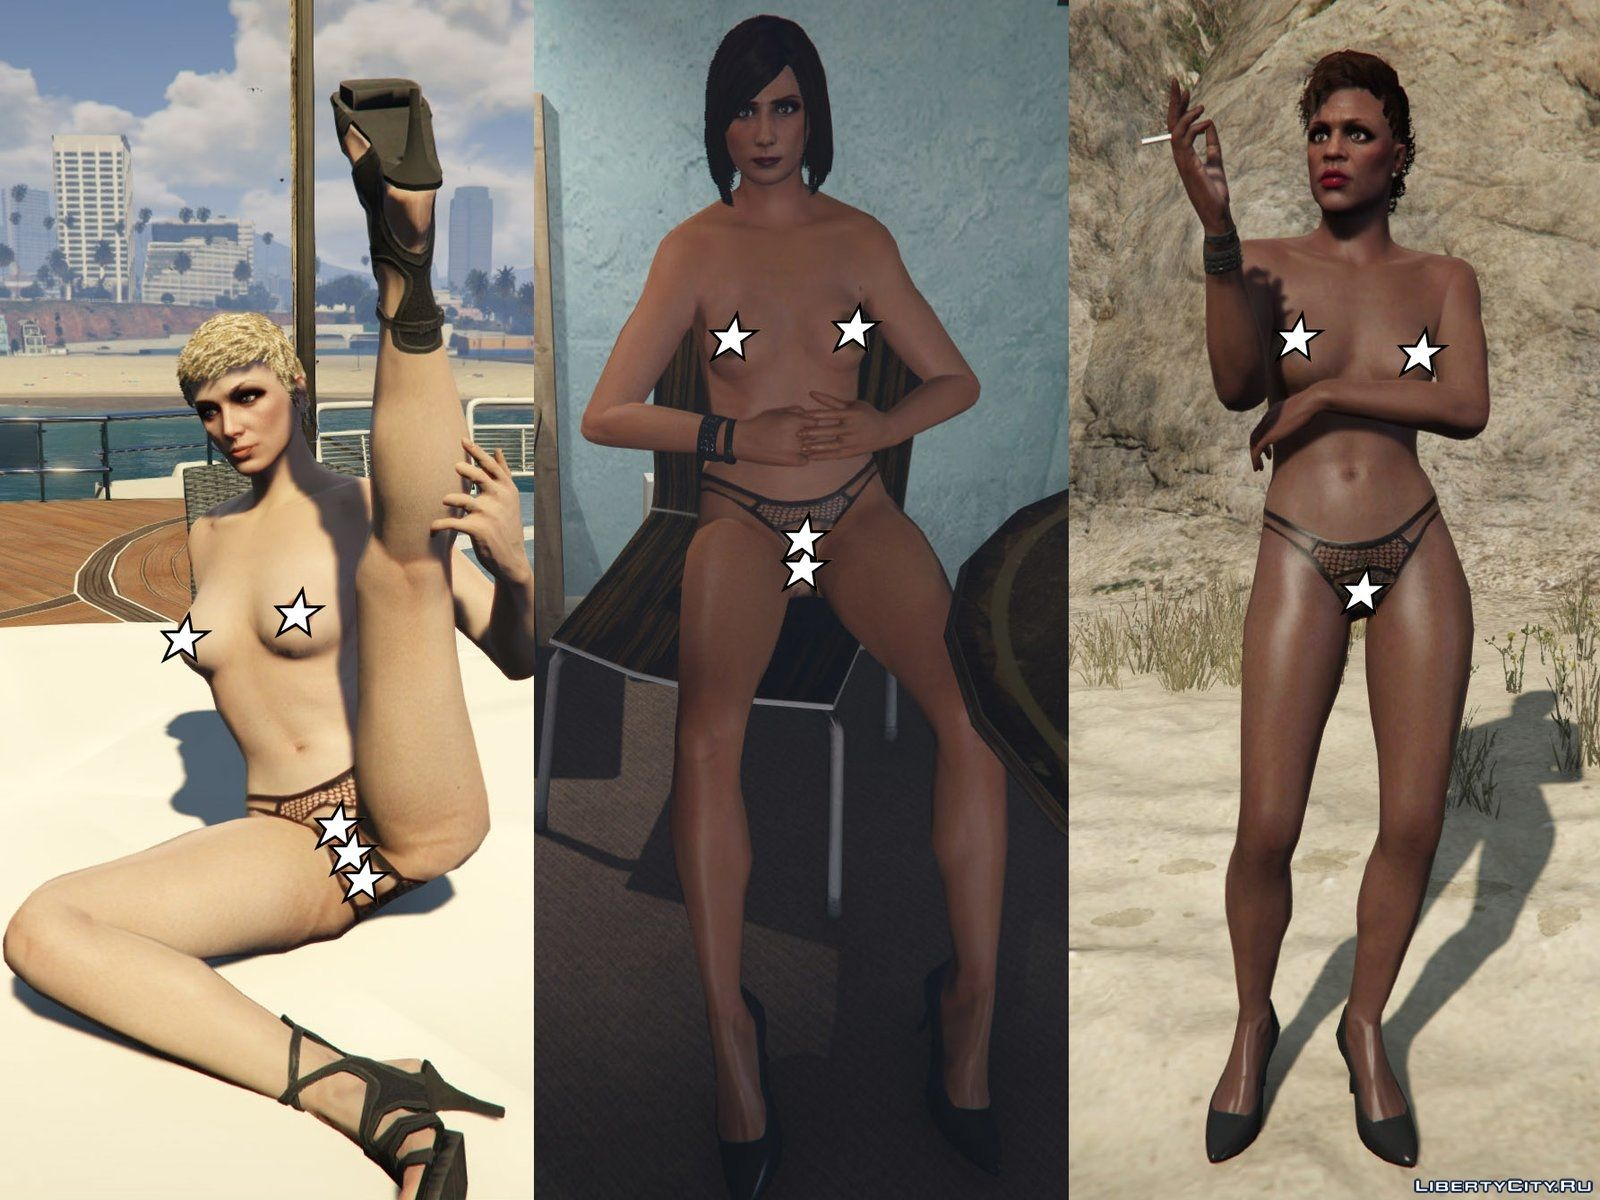 Gta4 nude boobs mod xxx video